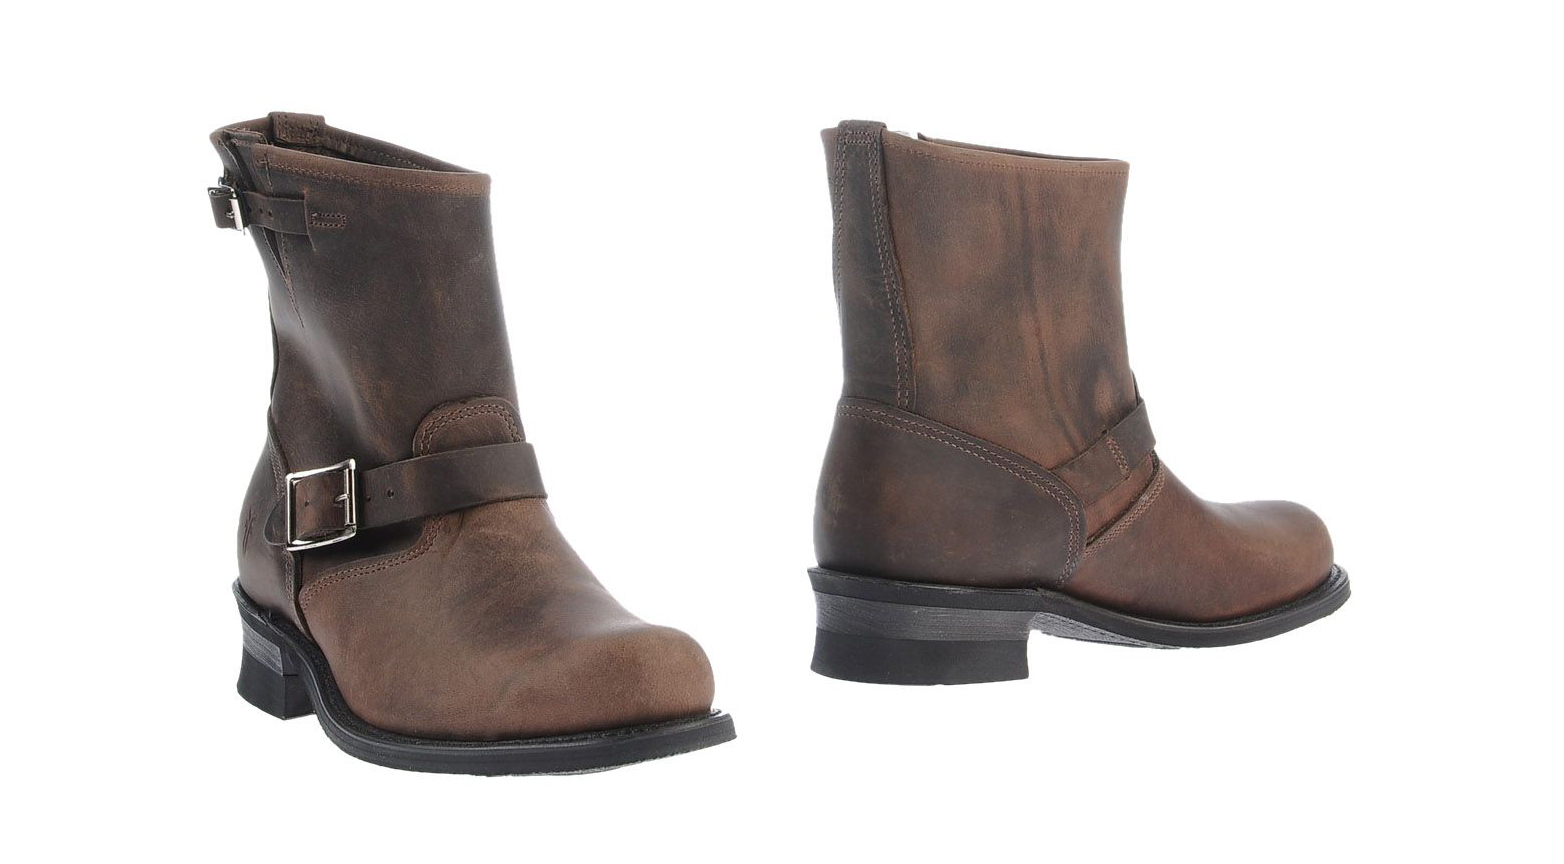 For over years, Frye's iconic boots have defined eras, embodied FRYE Women's Melissa Button 2 Riding Boot. by FRYE. $ - $ $ $ 00 Prime. Amazon Warehouse Great Deals on Quality Used Products: Whole Foods Market America's Healthiest Grocery Store: Withoutabox Submit to Film Festivals: Woot! Deals and.